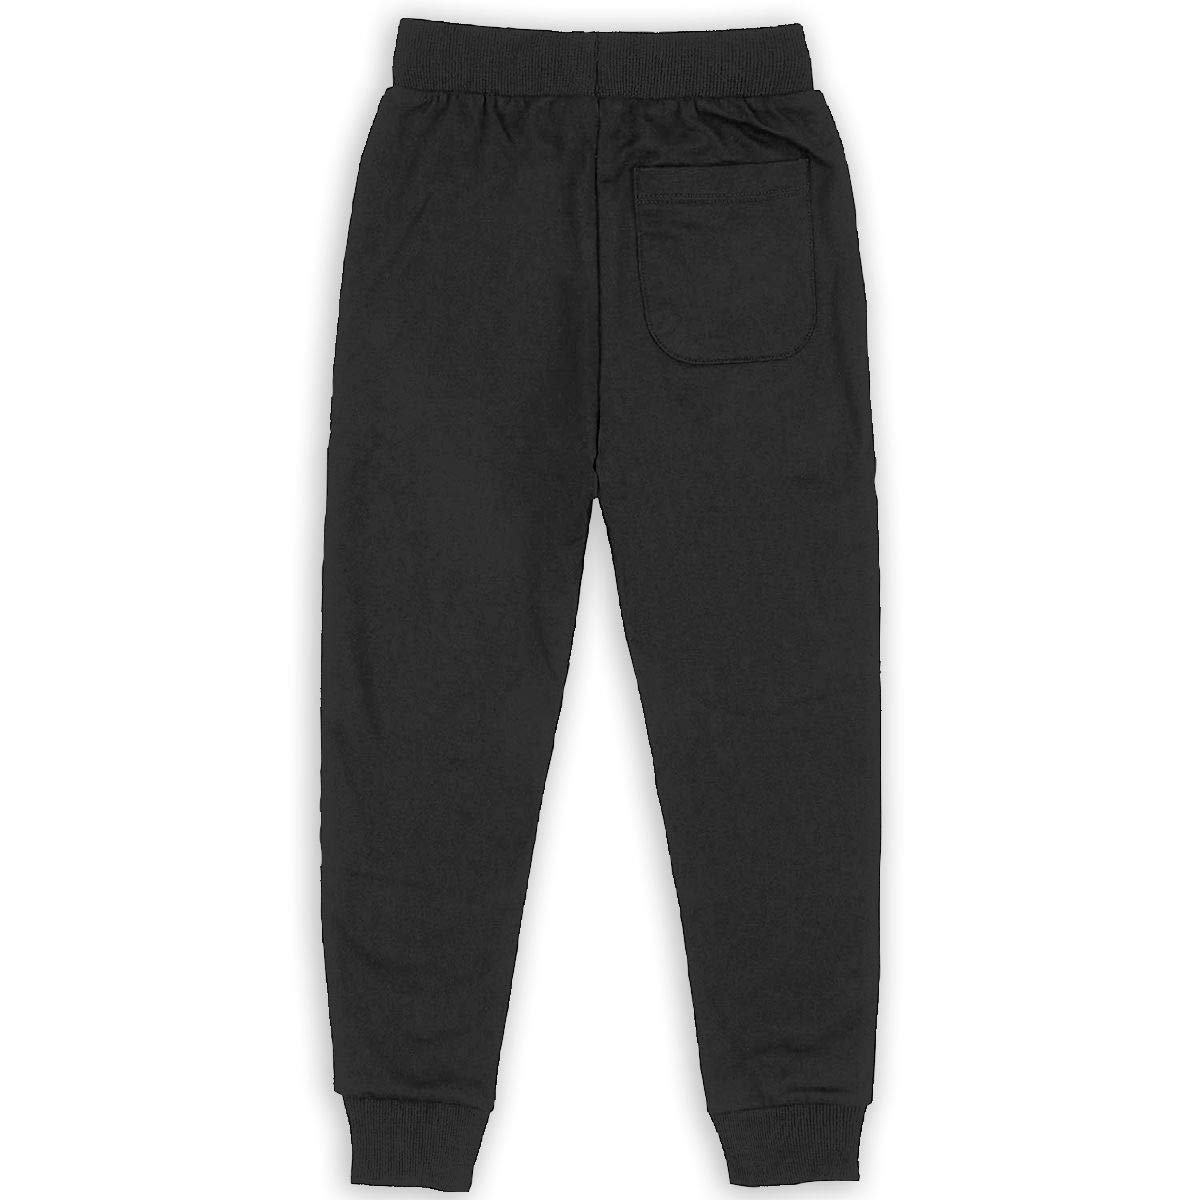 Unisex Teens Interpol Turn On The Bright Lights Fashionable Music Band Fans Daily Sweatpants for Boys Gift with Pockets